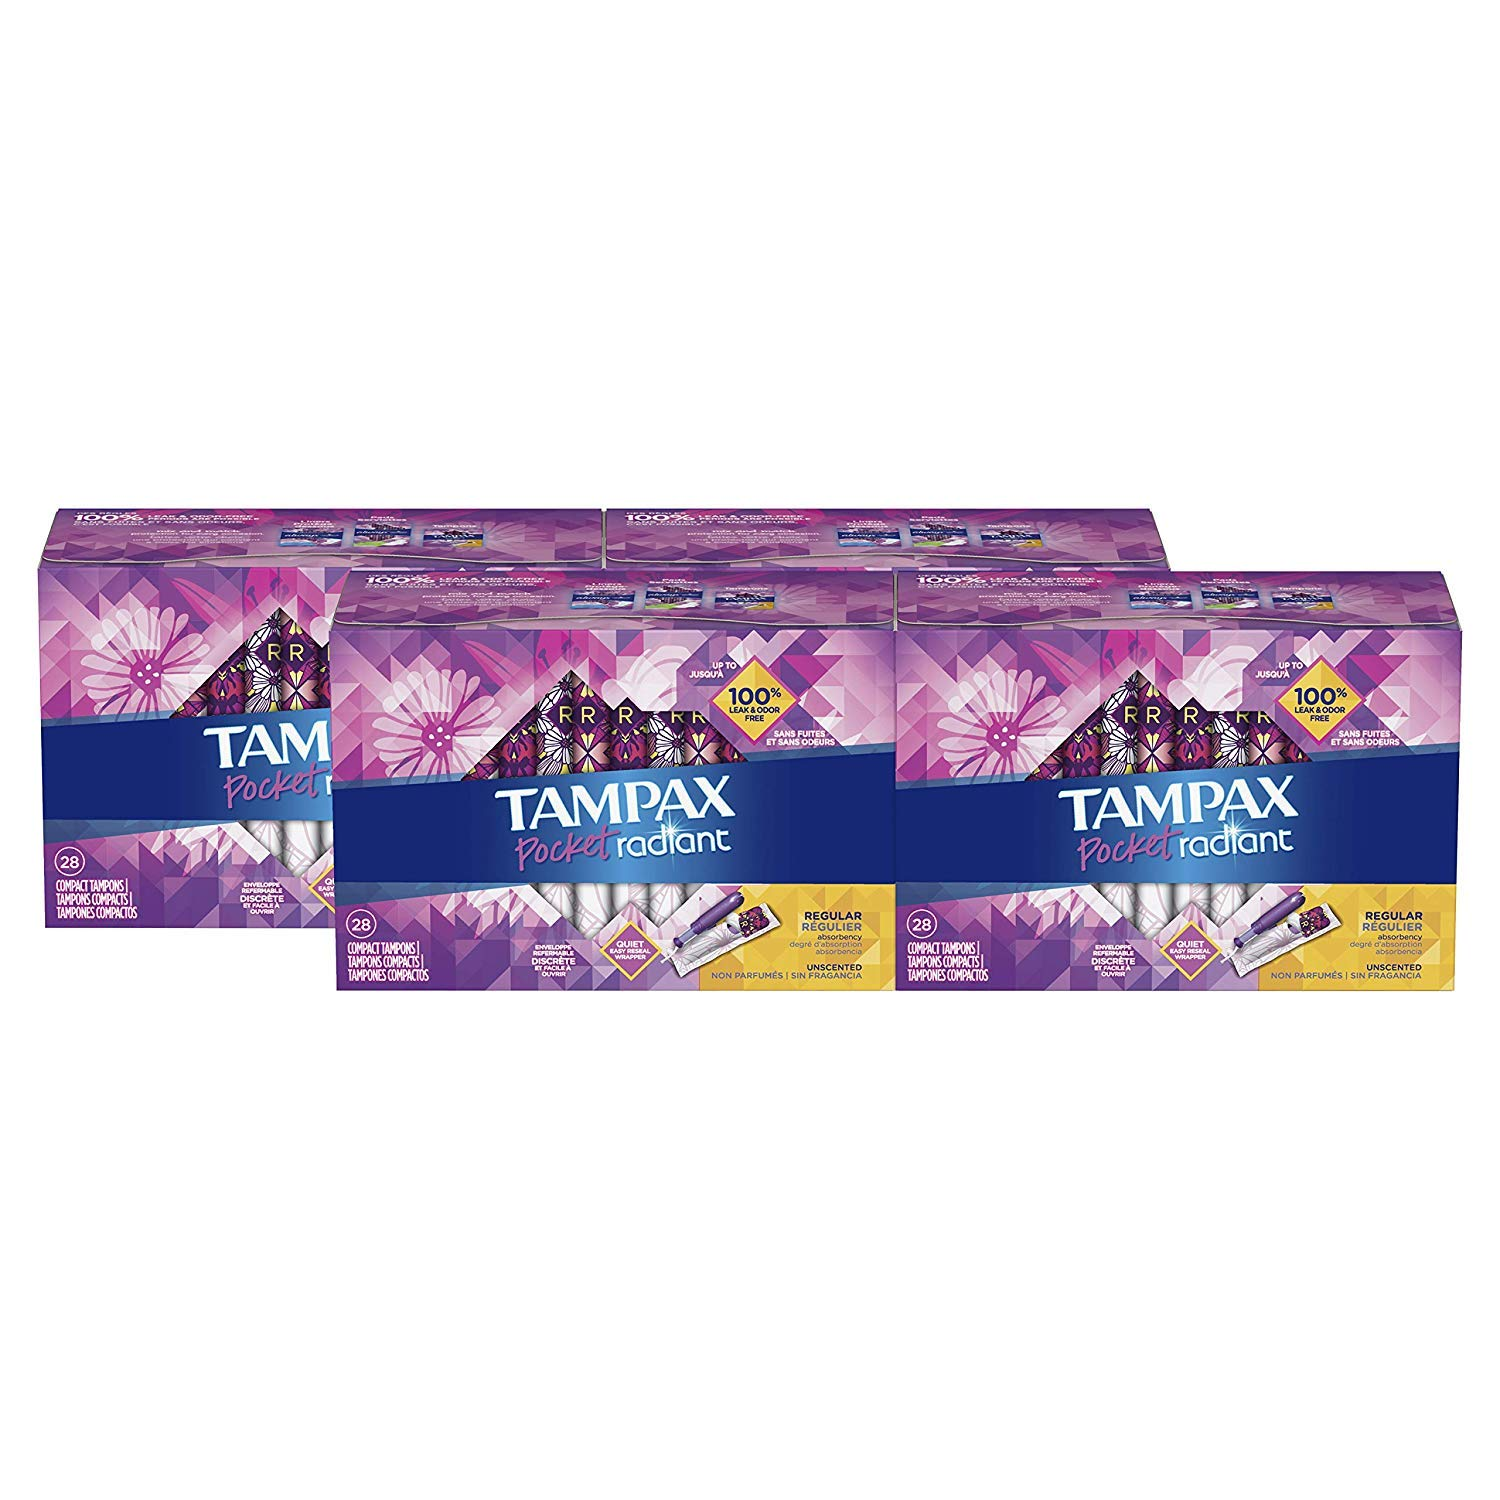 TAMPAX Pocket Radiant, Regular, Compact Plastic Tampons, Unscented, 112 Count (Packaging May Vary)